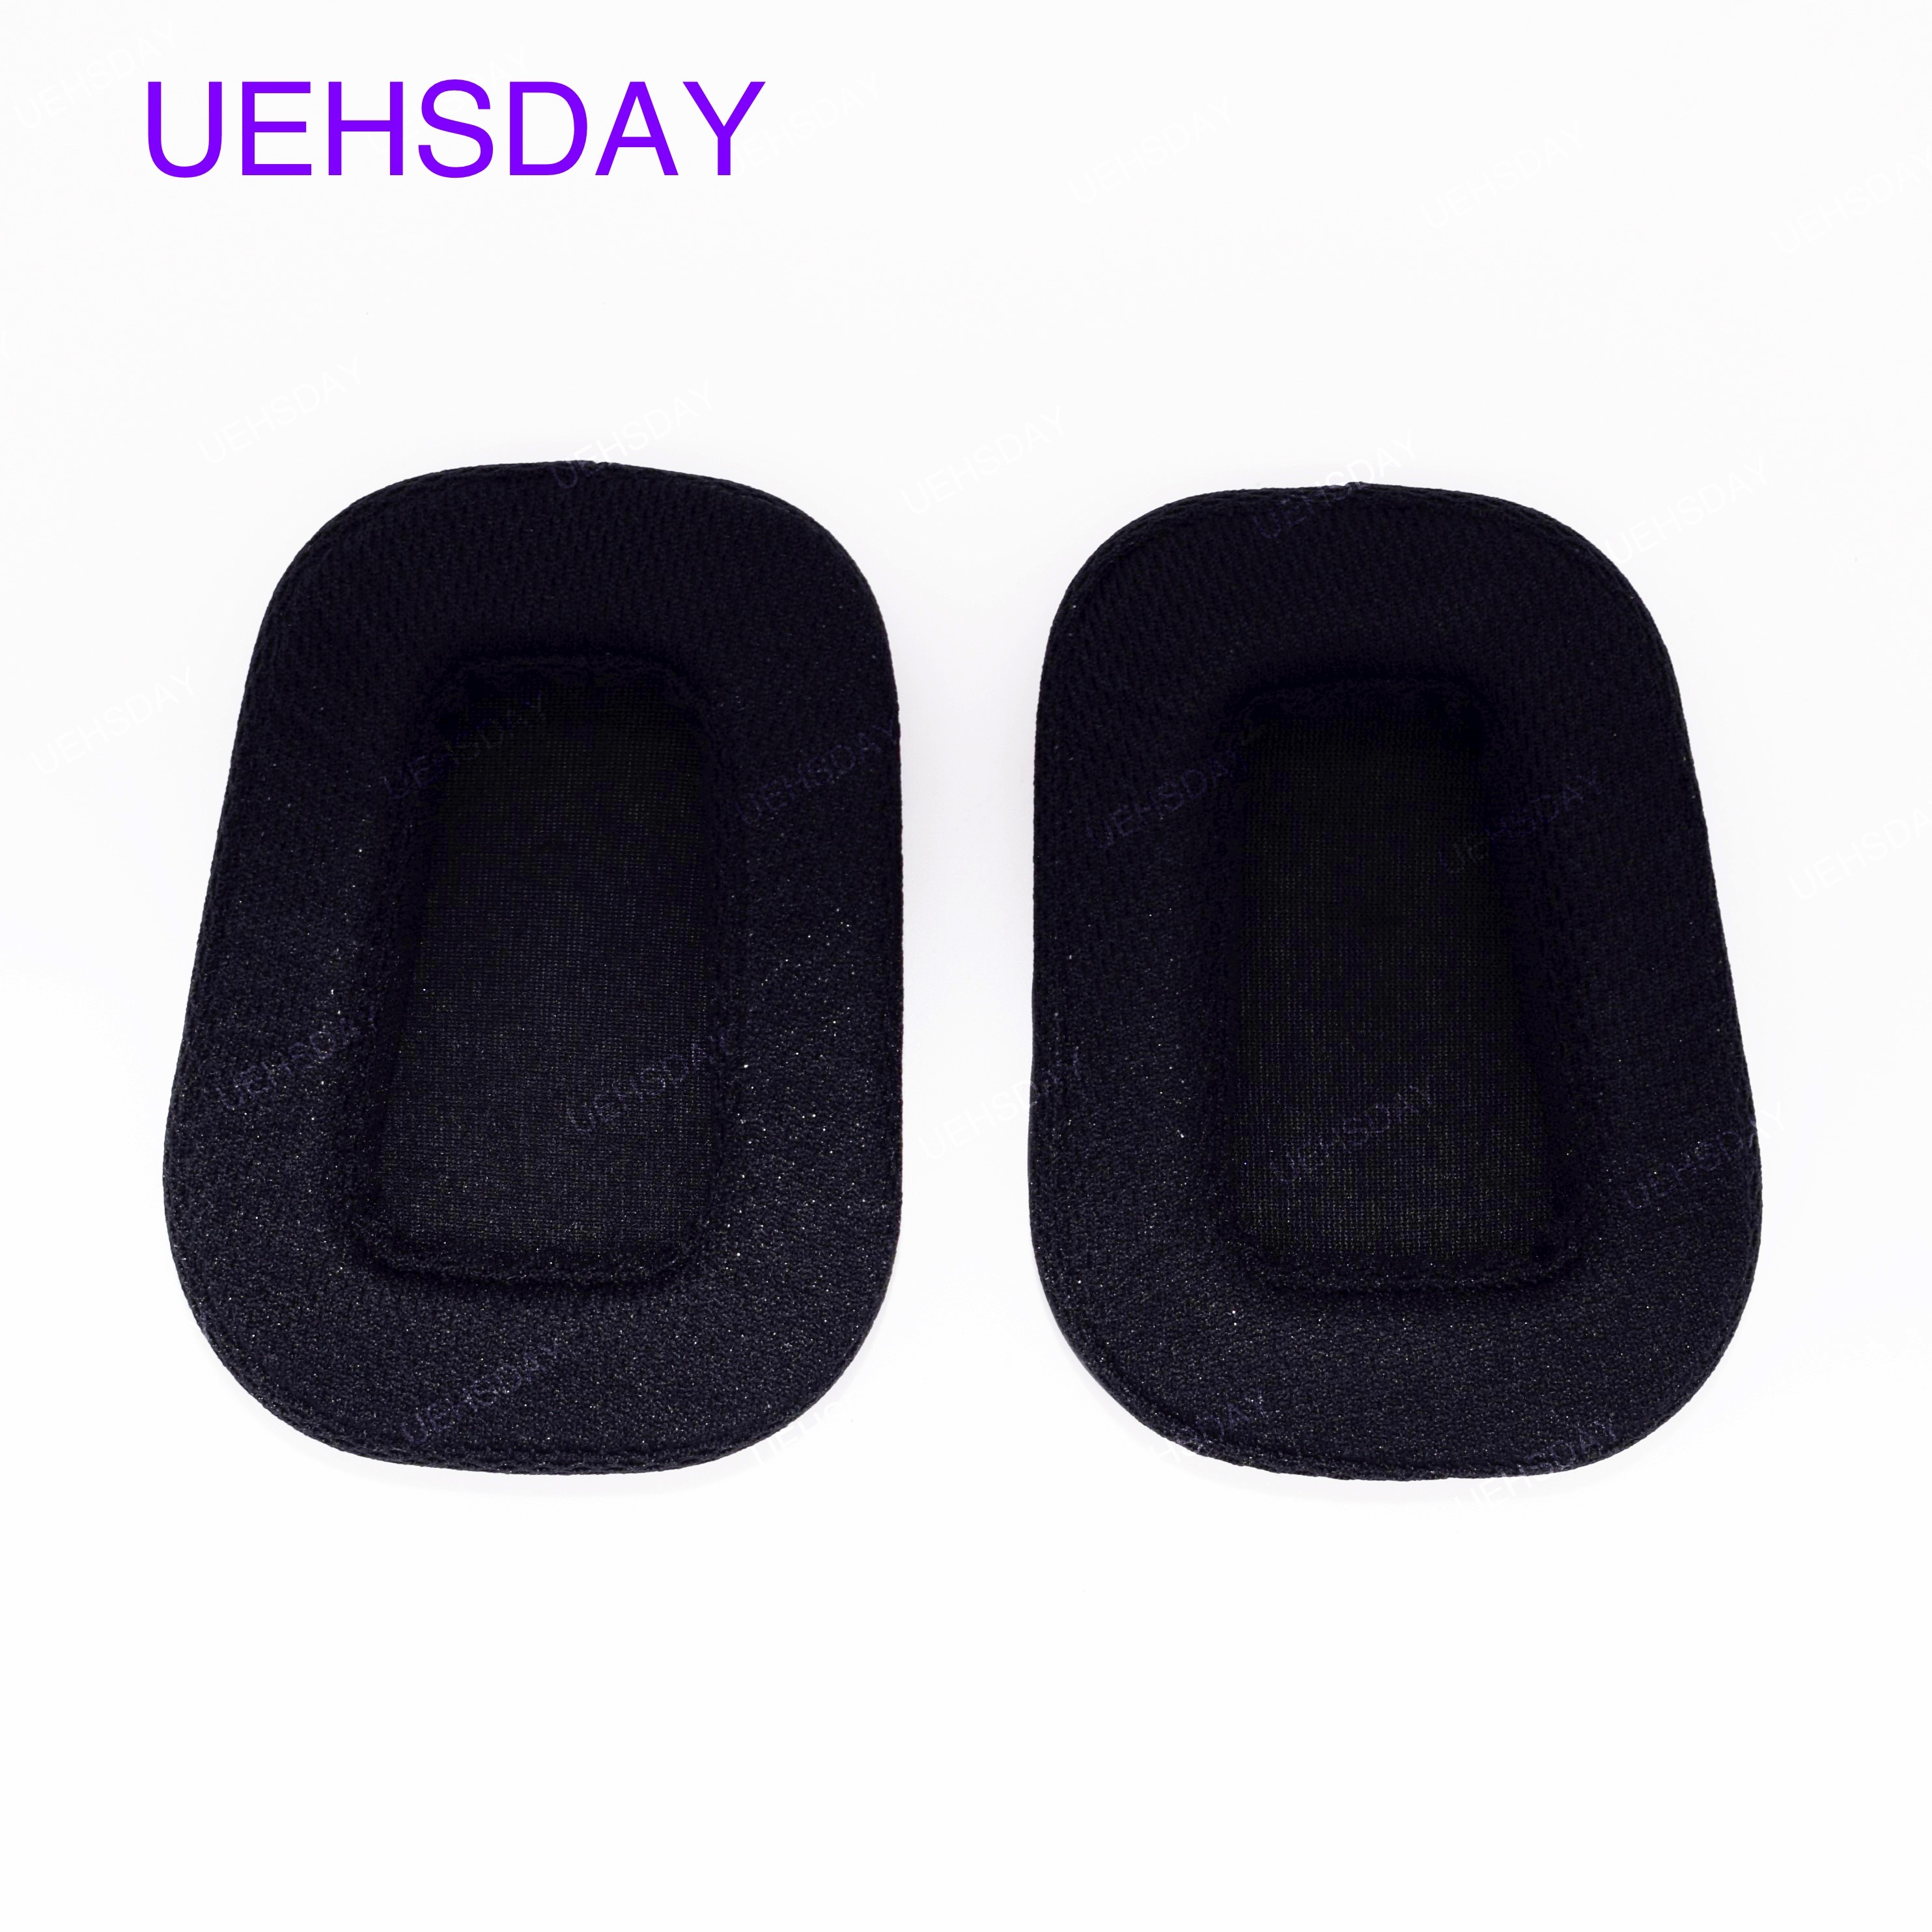 2X Earpads for Logitech G933 / G633 - PU Leather Replacement Ear Pads for Over-Ear Headphones - Black image